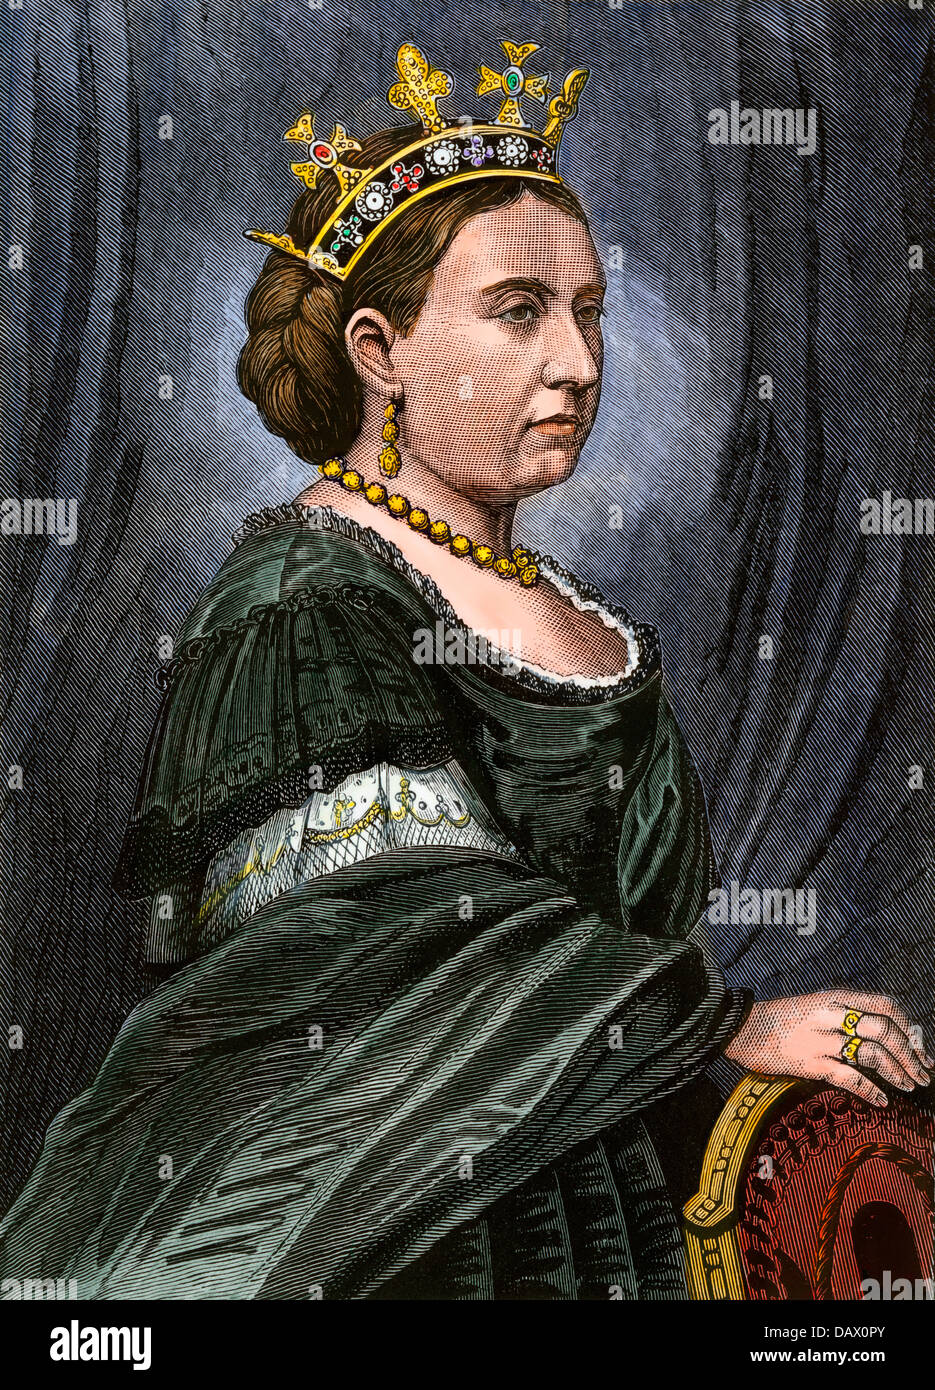 Queen of England Victoria I, 1870s. Hand-colored woodcut - Stock Image